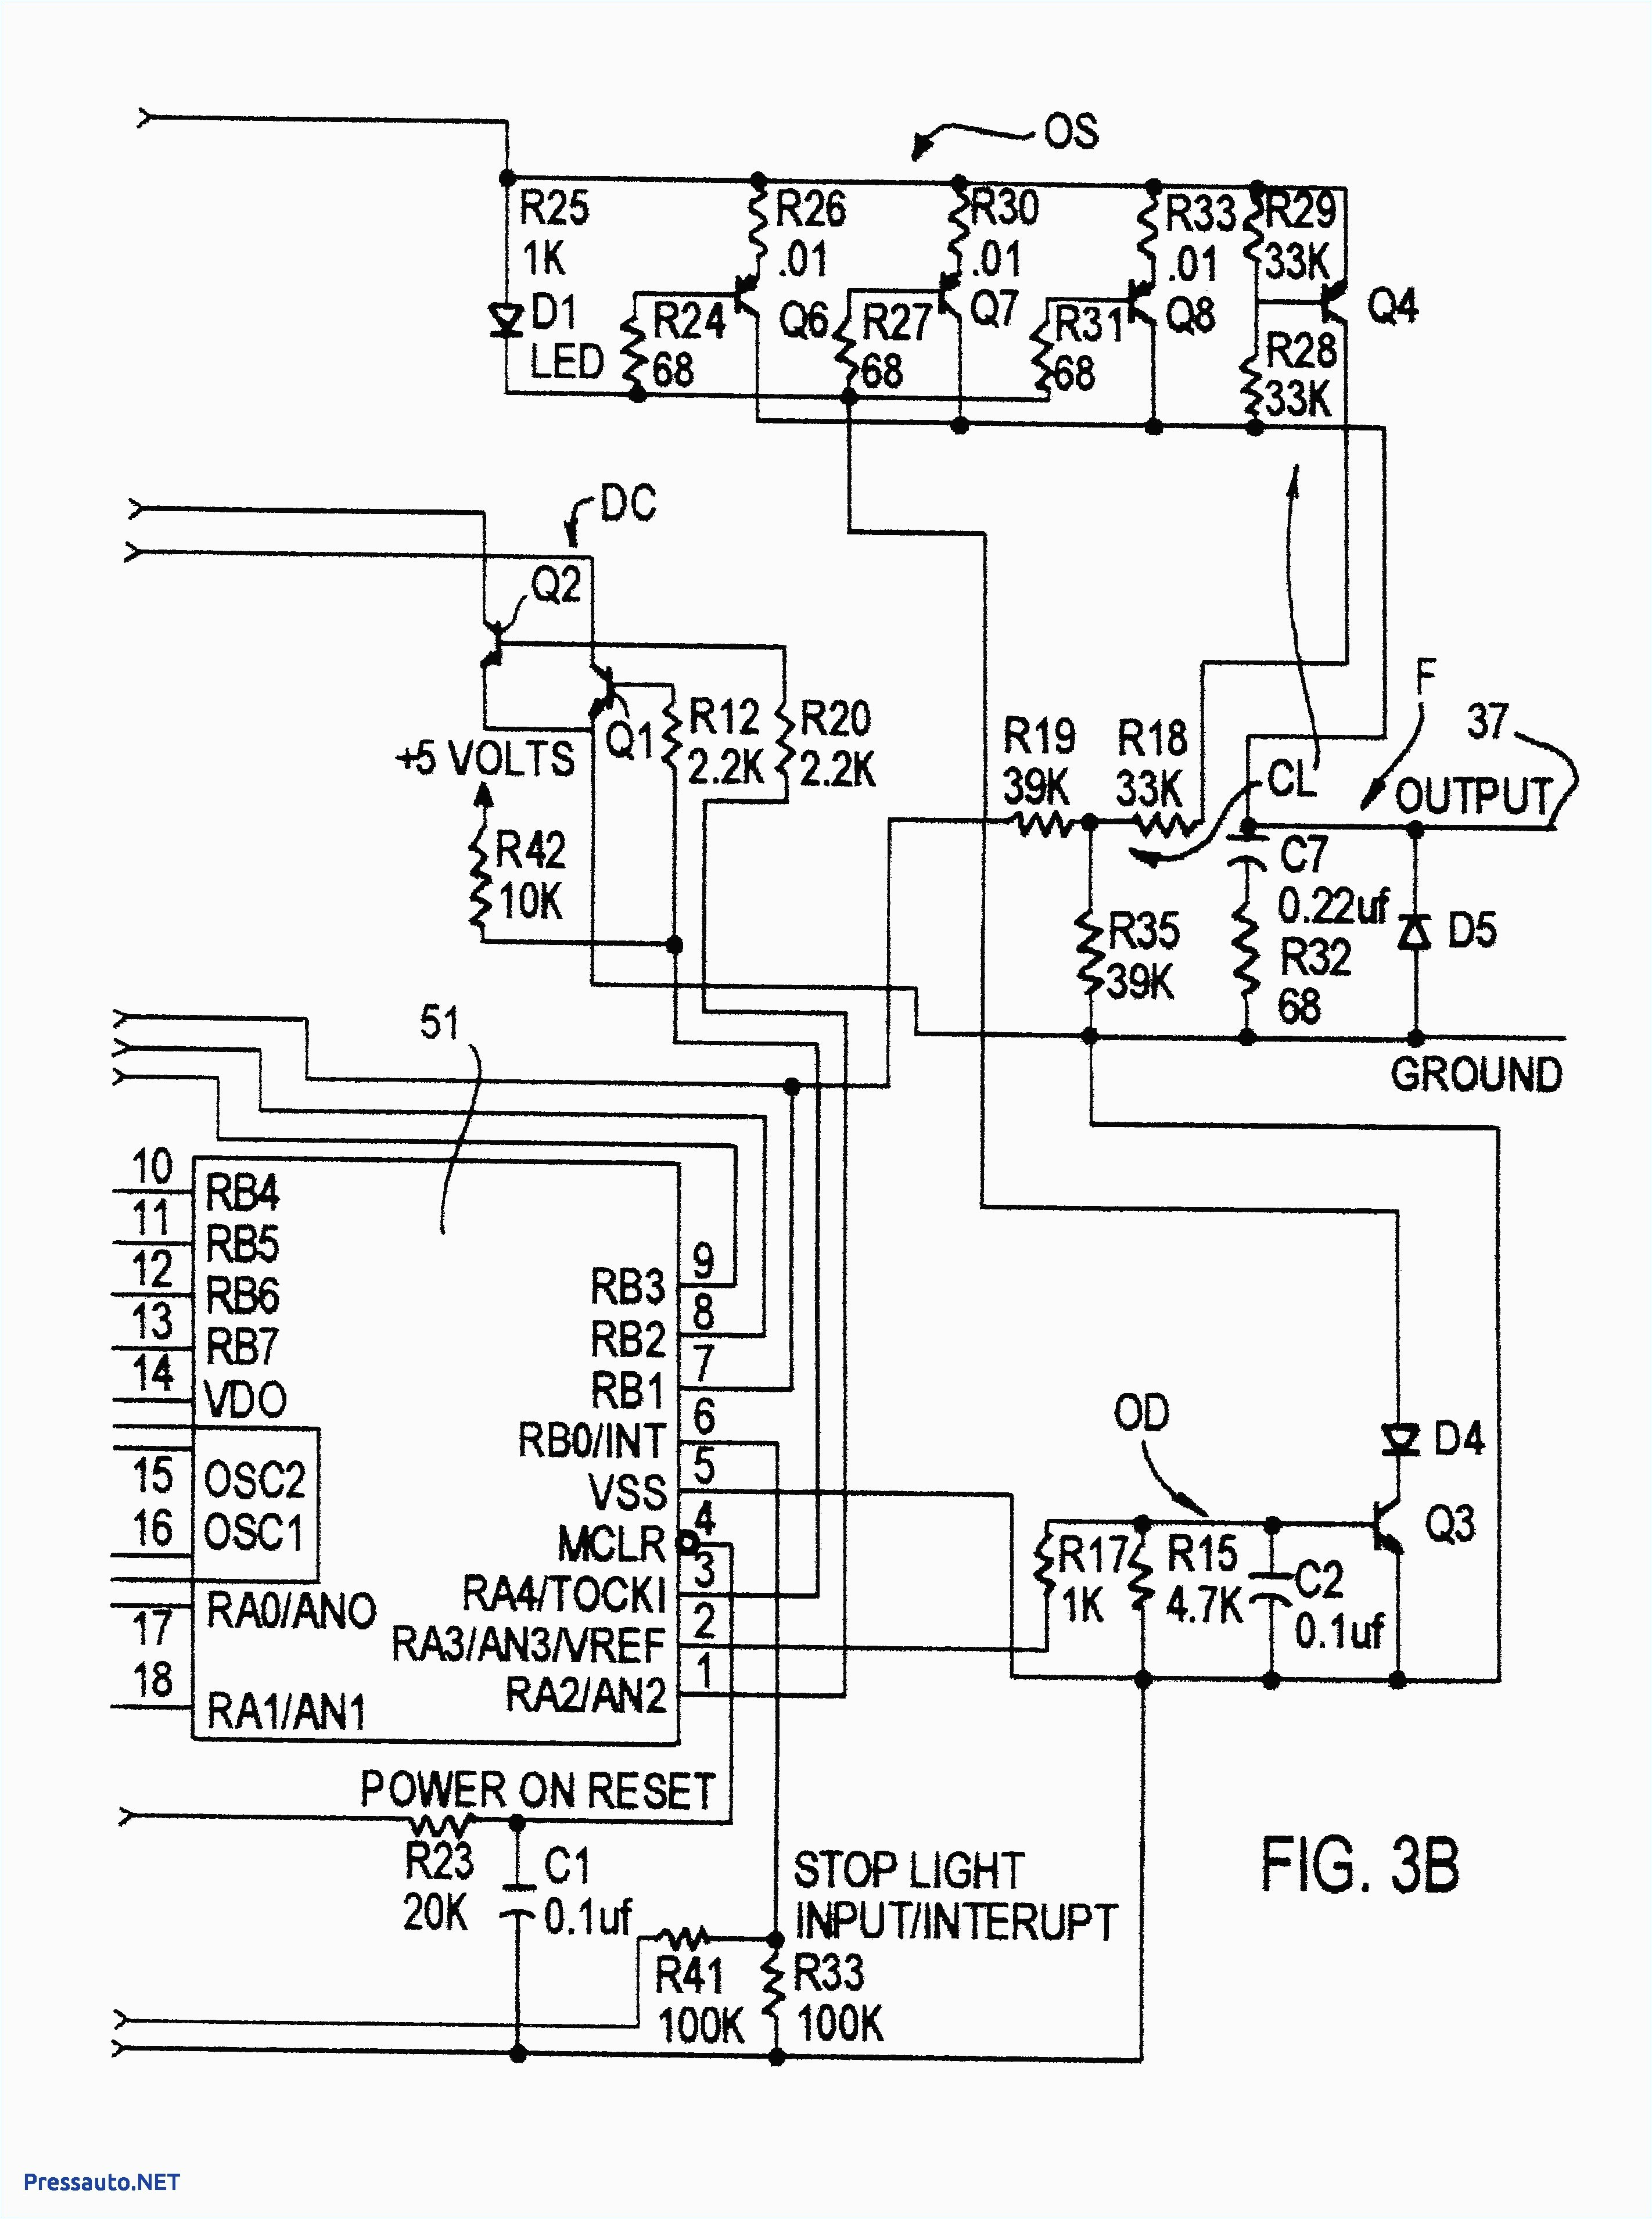 abb vfd wiring diagram reference of boss auto diagrams instructions png